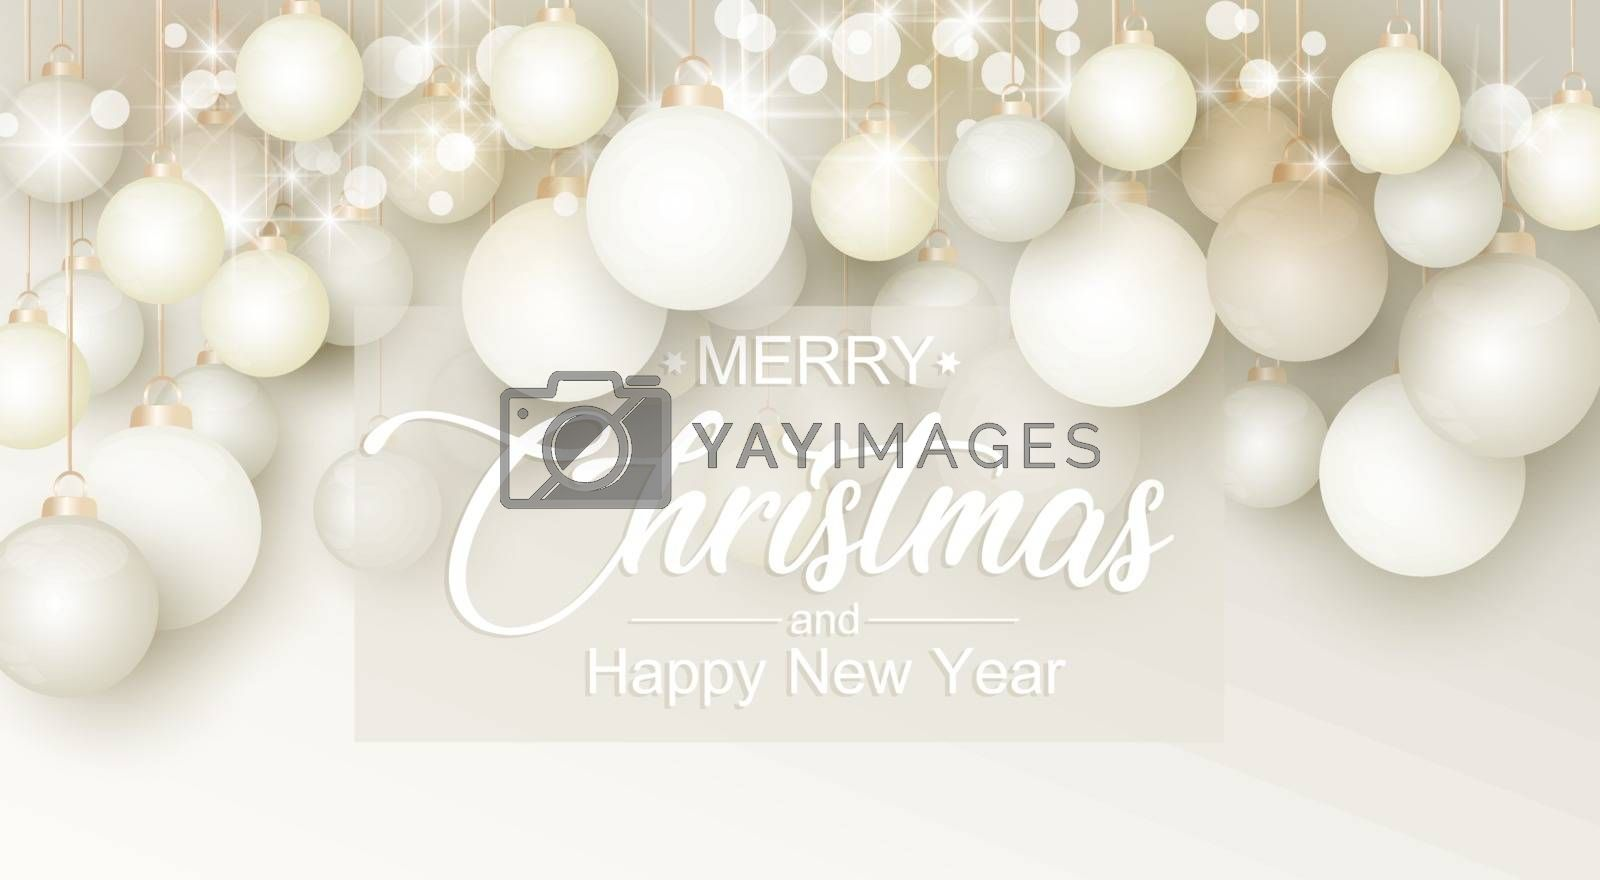 Vector illustration of Christmas balls. Christmas decoration background. Merry Christmas and Happy New Year